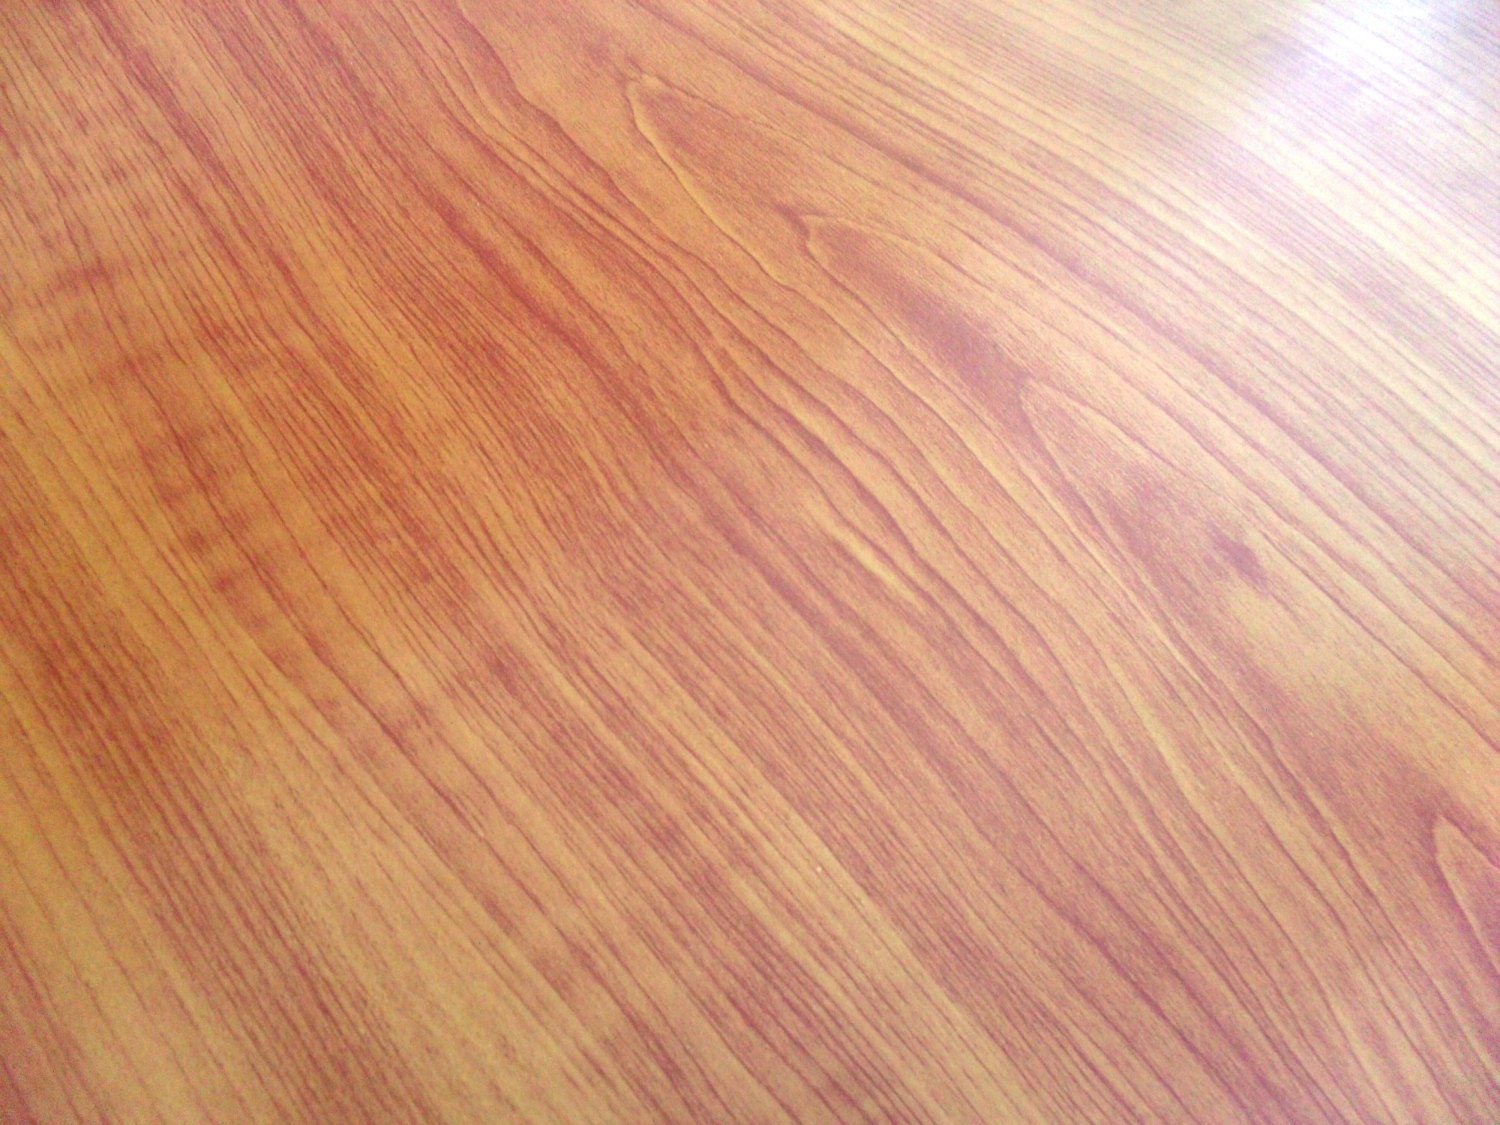 Scrapbook paper wood grain -  2 00